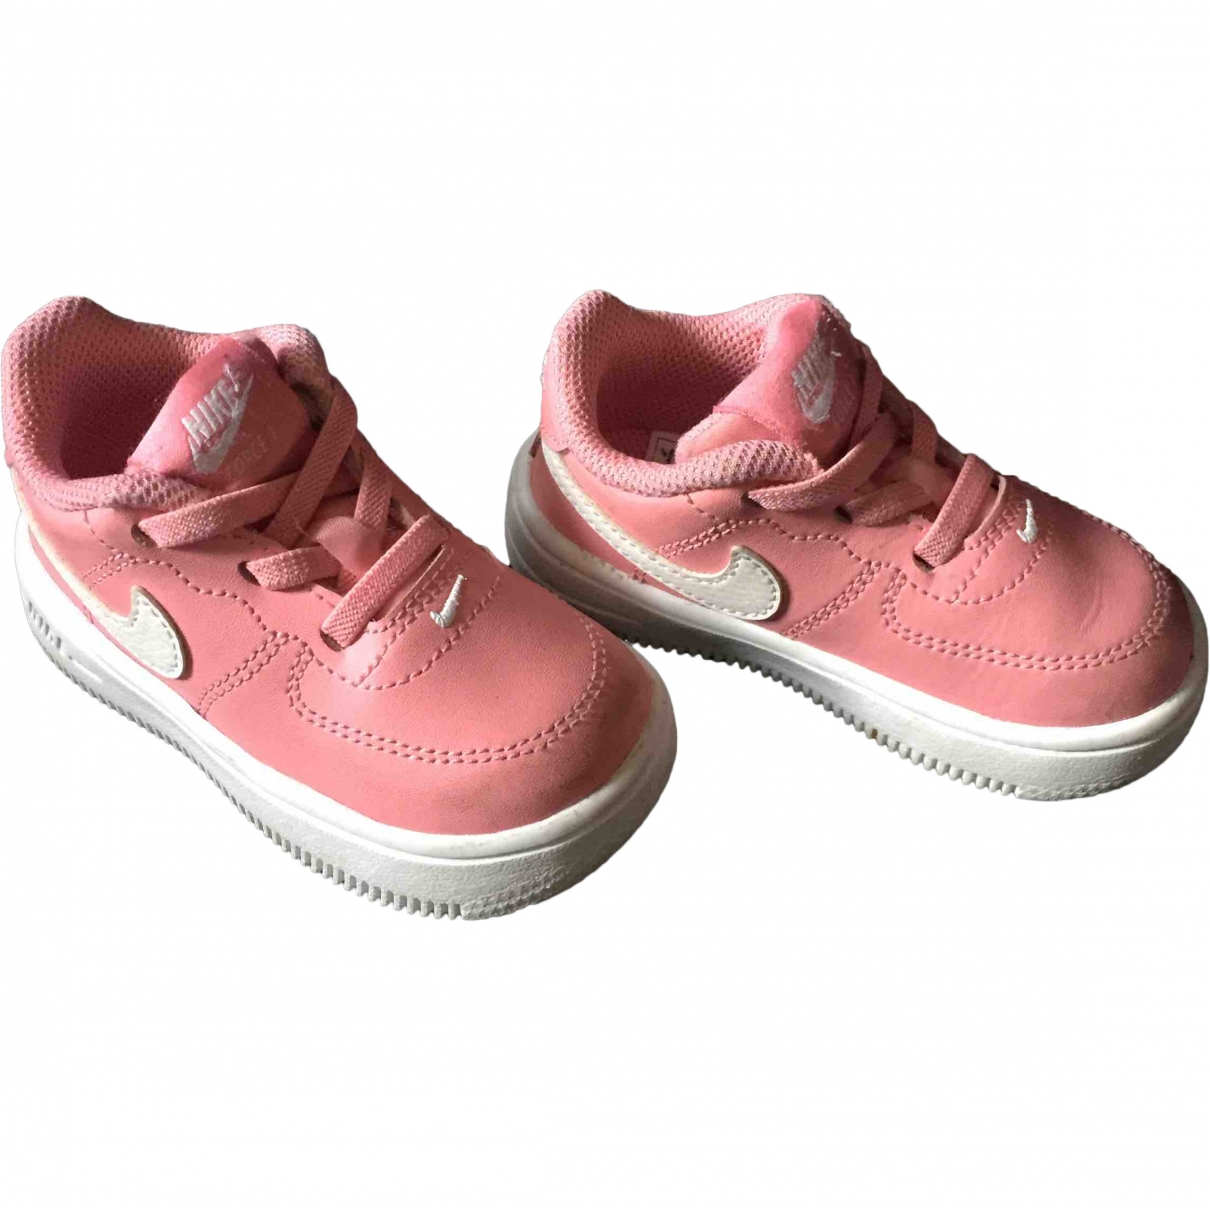 Nike Air Force 1 Pink Leather Trainers for Kids 21 EU